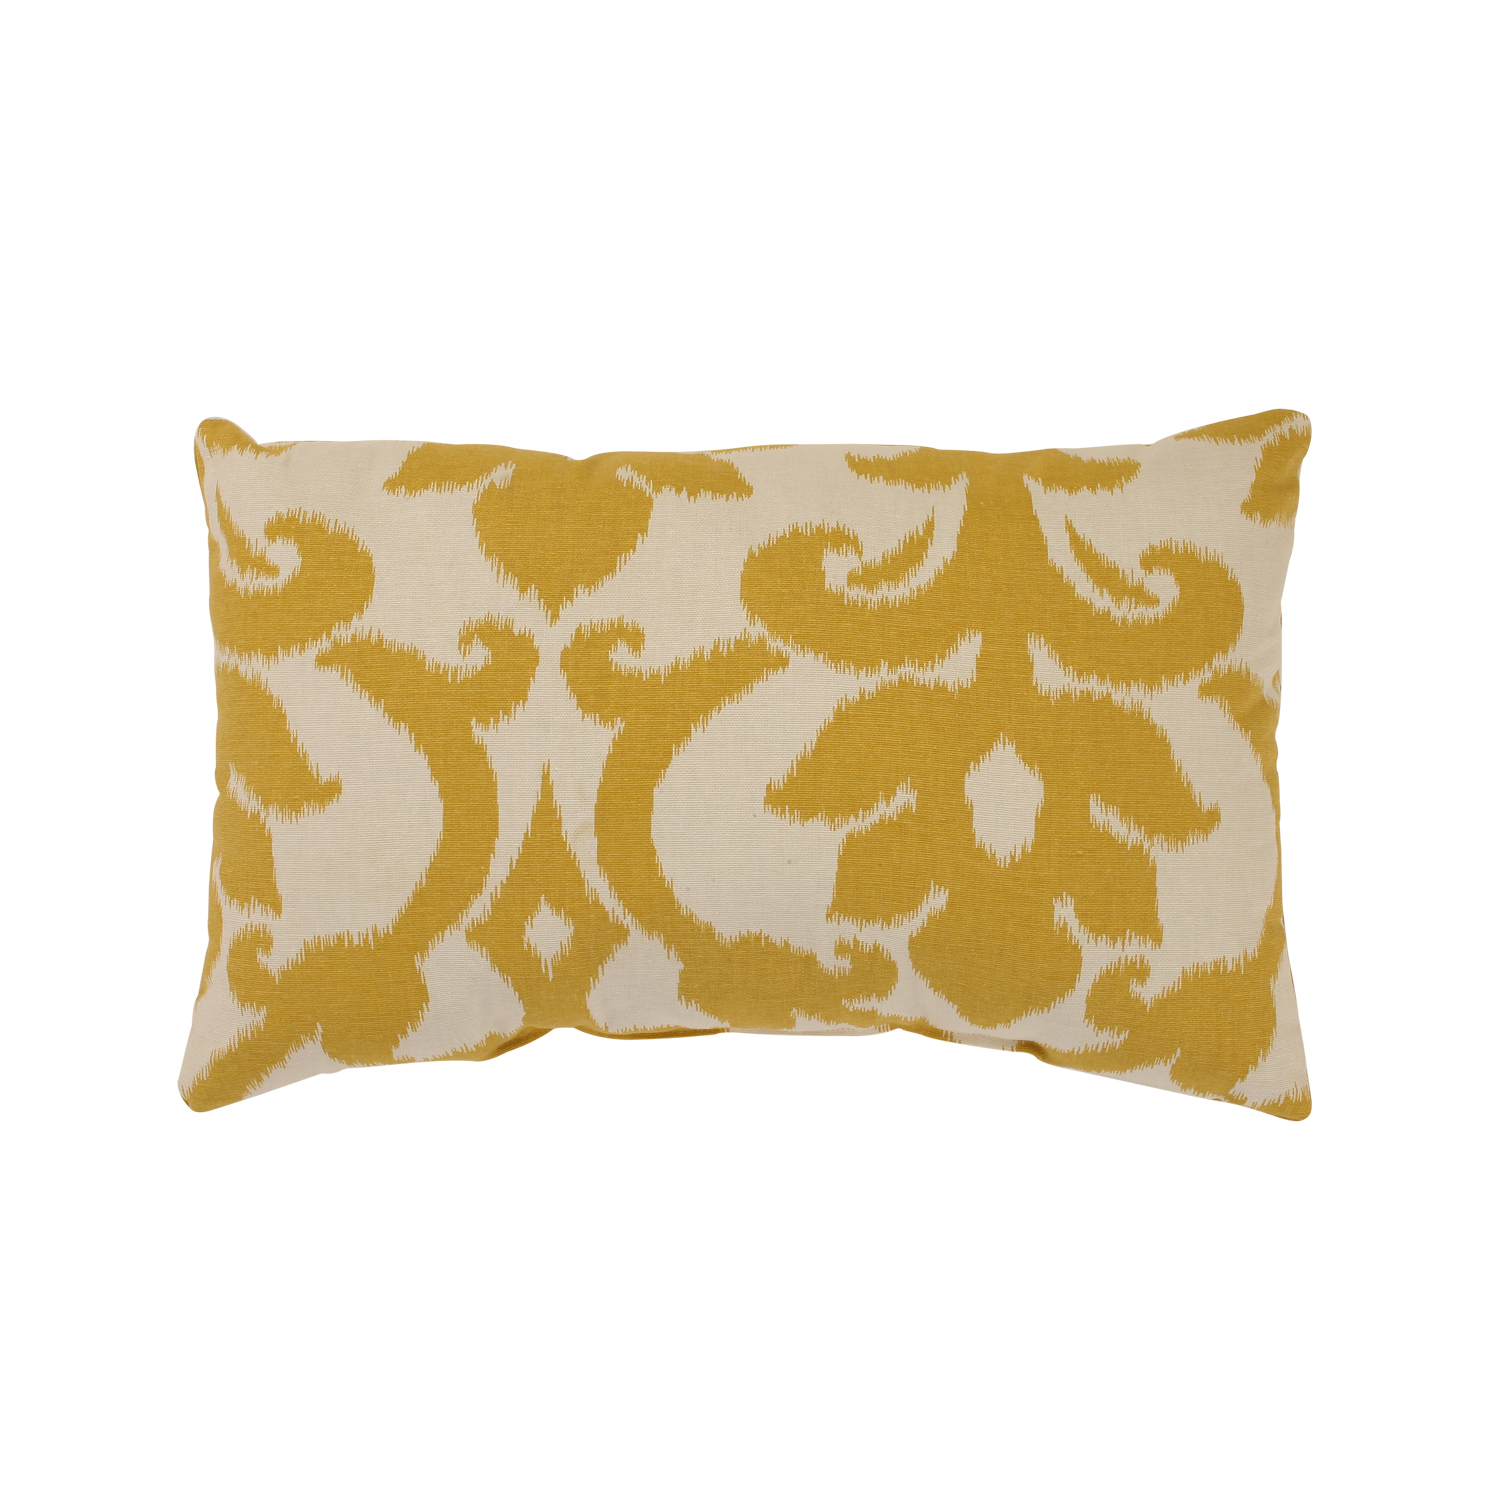 West Elm Throw | Plaid Pillows | Gold Throw Pillows